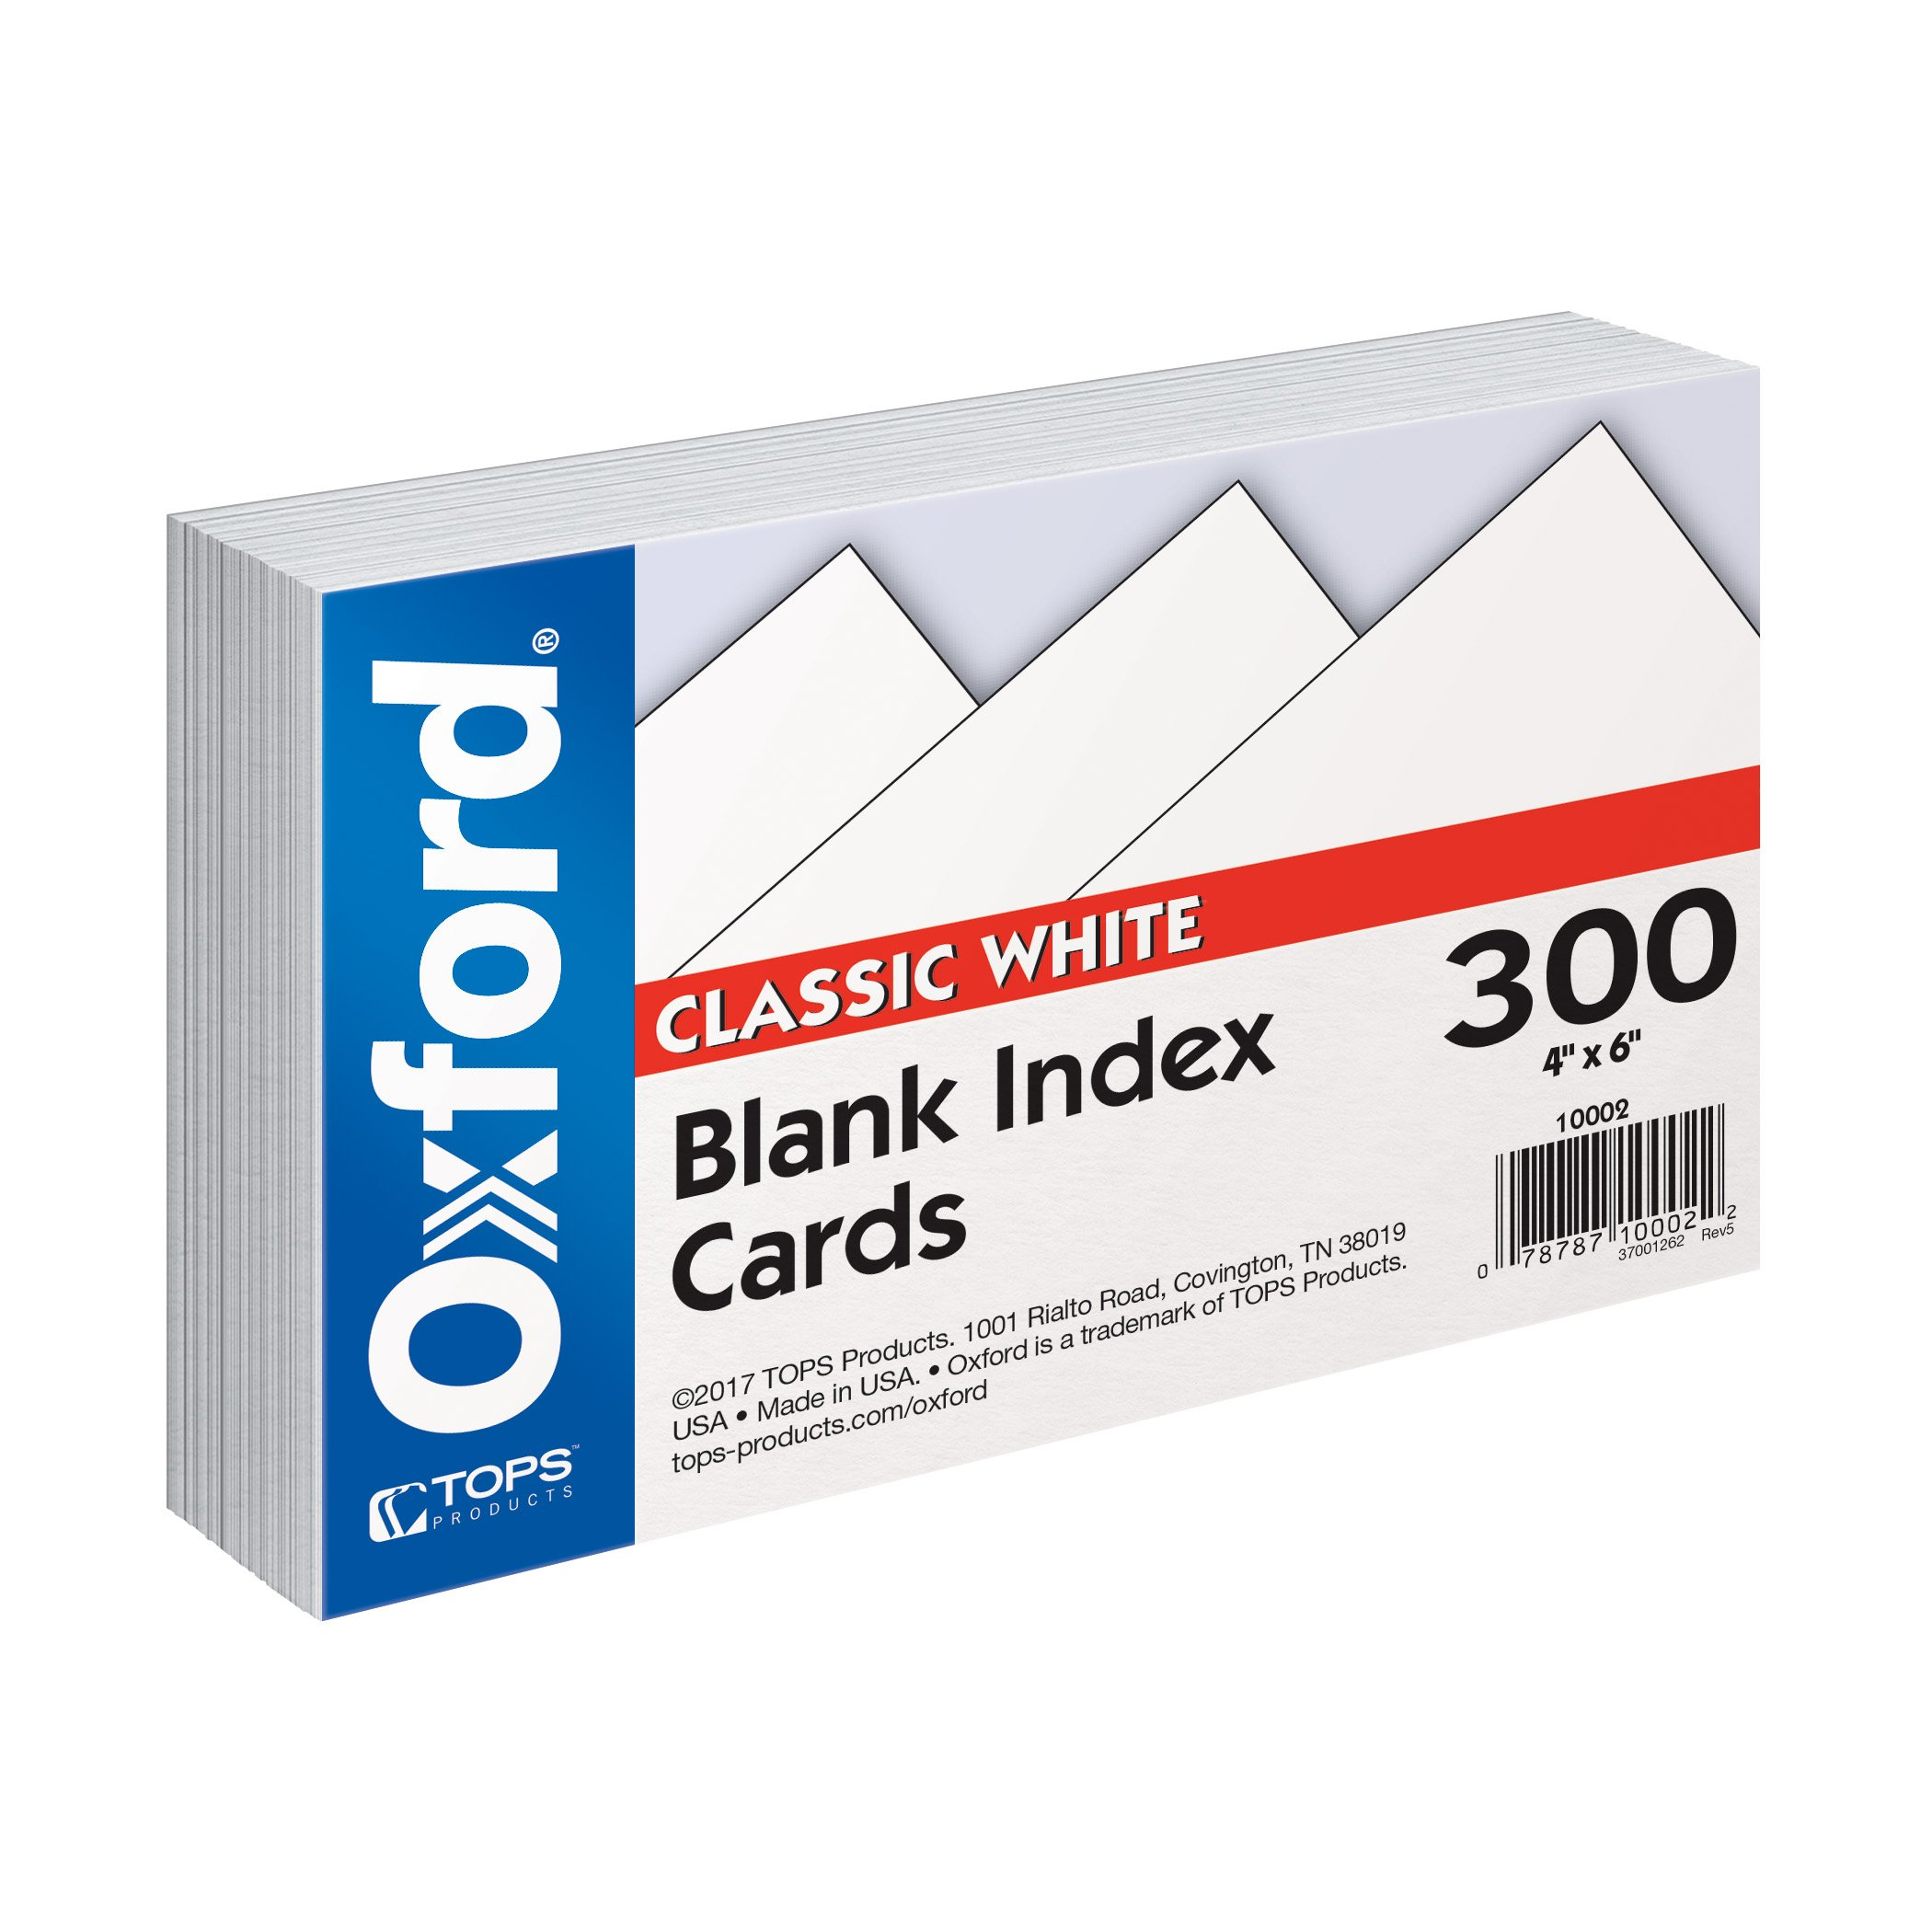 Oxford Blank Index Cards, 4'' x 6'', White, 300 pack (10002EE)